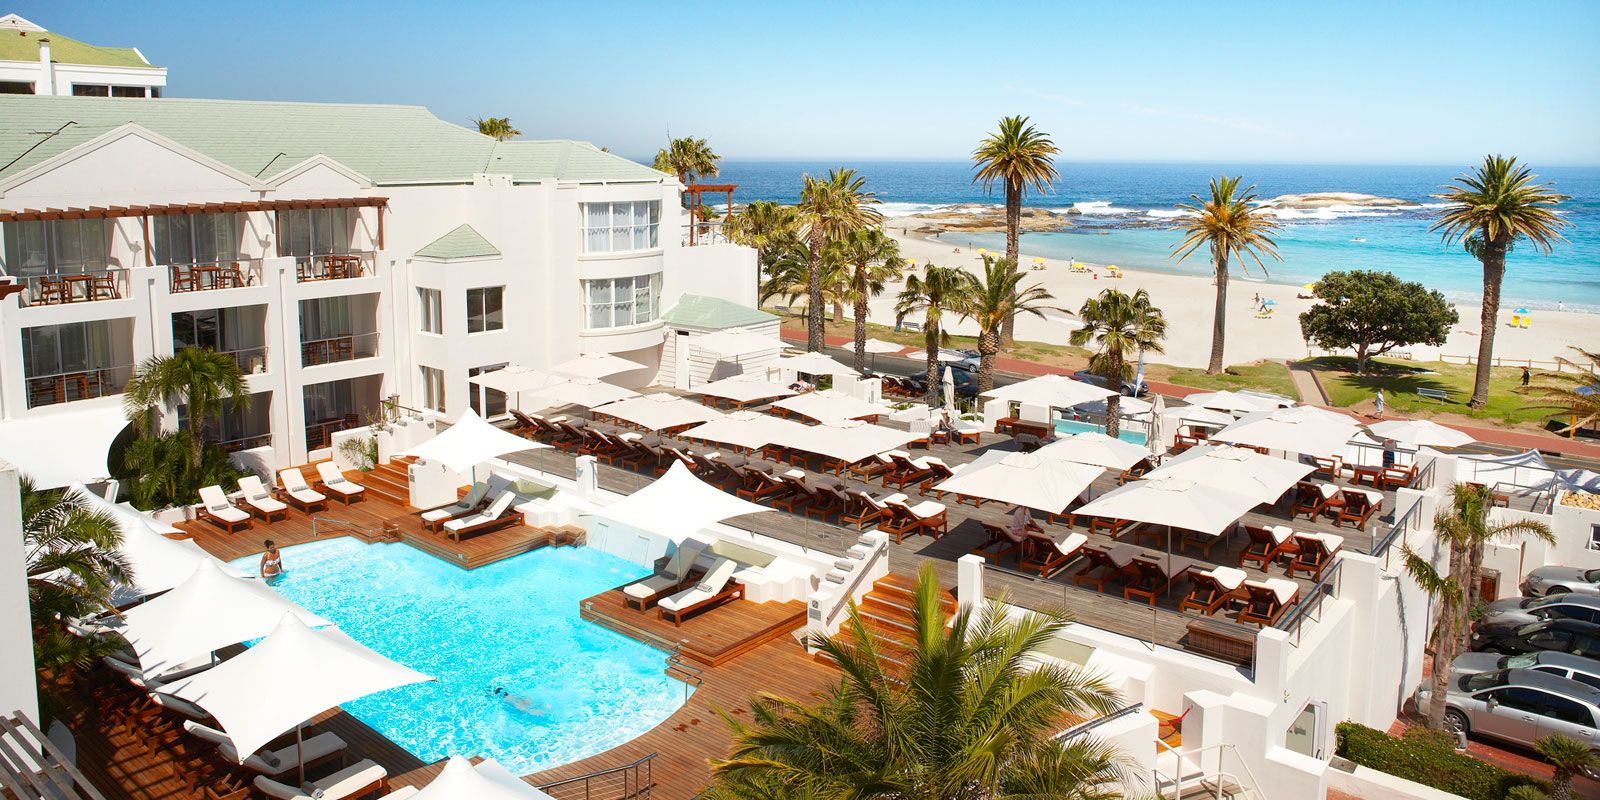 Hotels in cape town  : The Bay Hotel